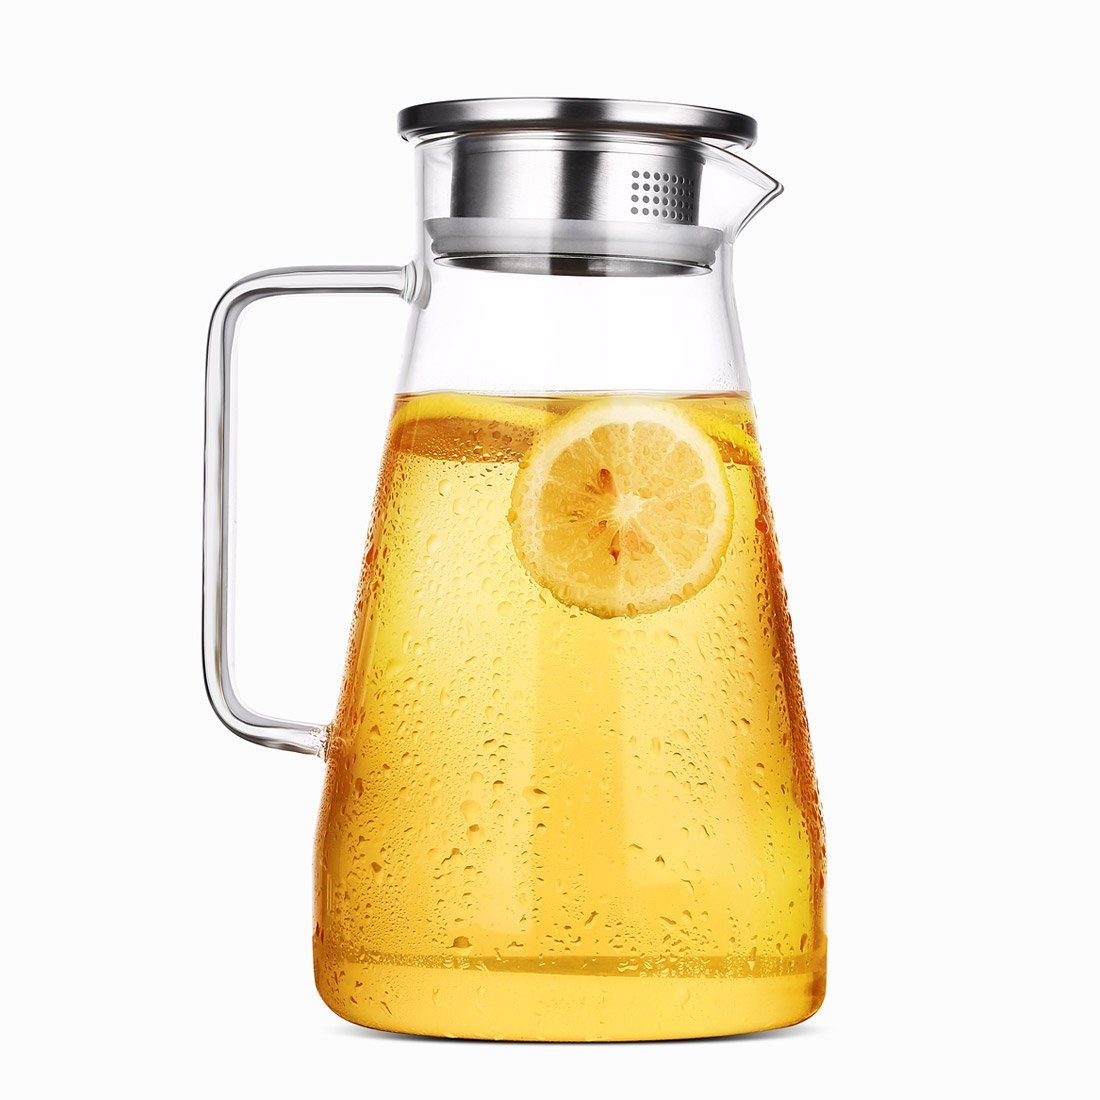 HOLD U FUN 1.8L/63oz Glass Water Carafe Pitcher with Stainless Steel Lid, Hot and Cold Water Jar/Carafe for Water,ice tea Juice container,fridge pitcher with handle,(1800ML)